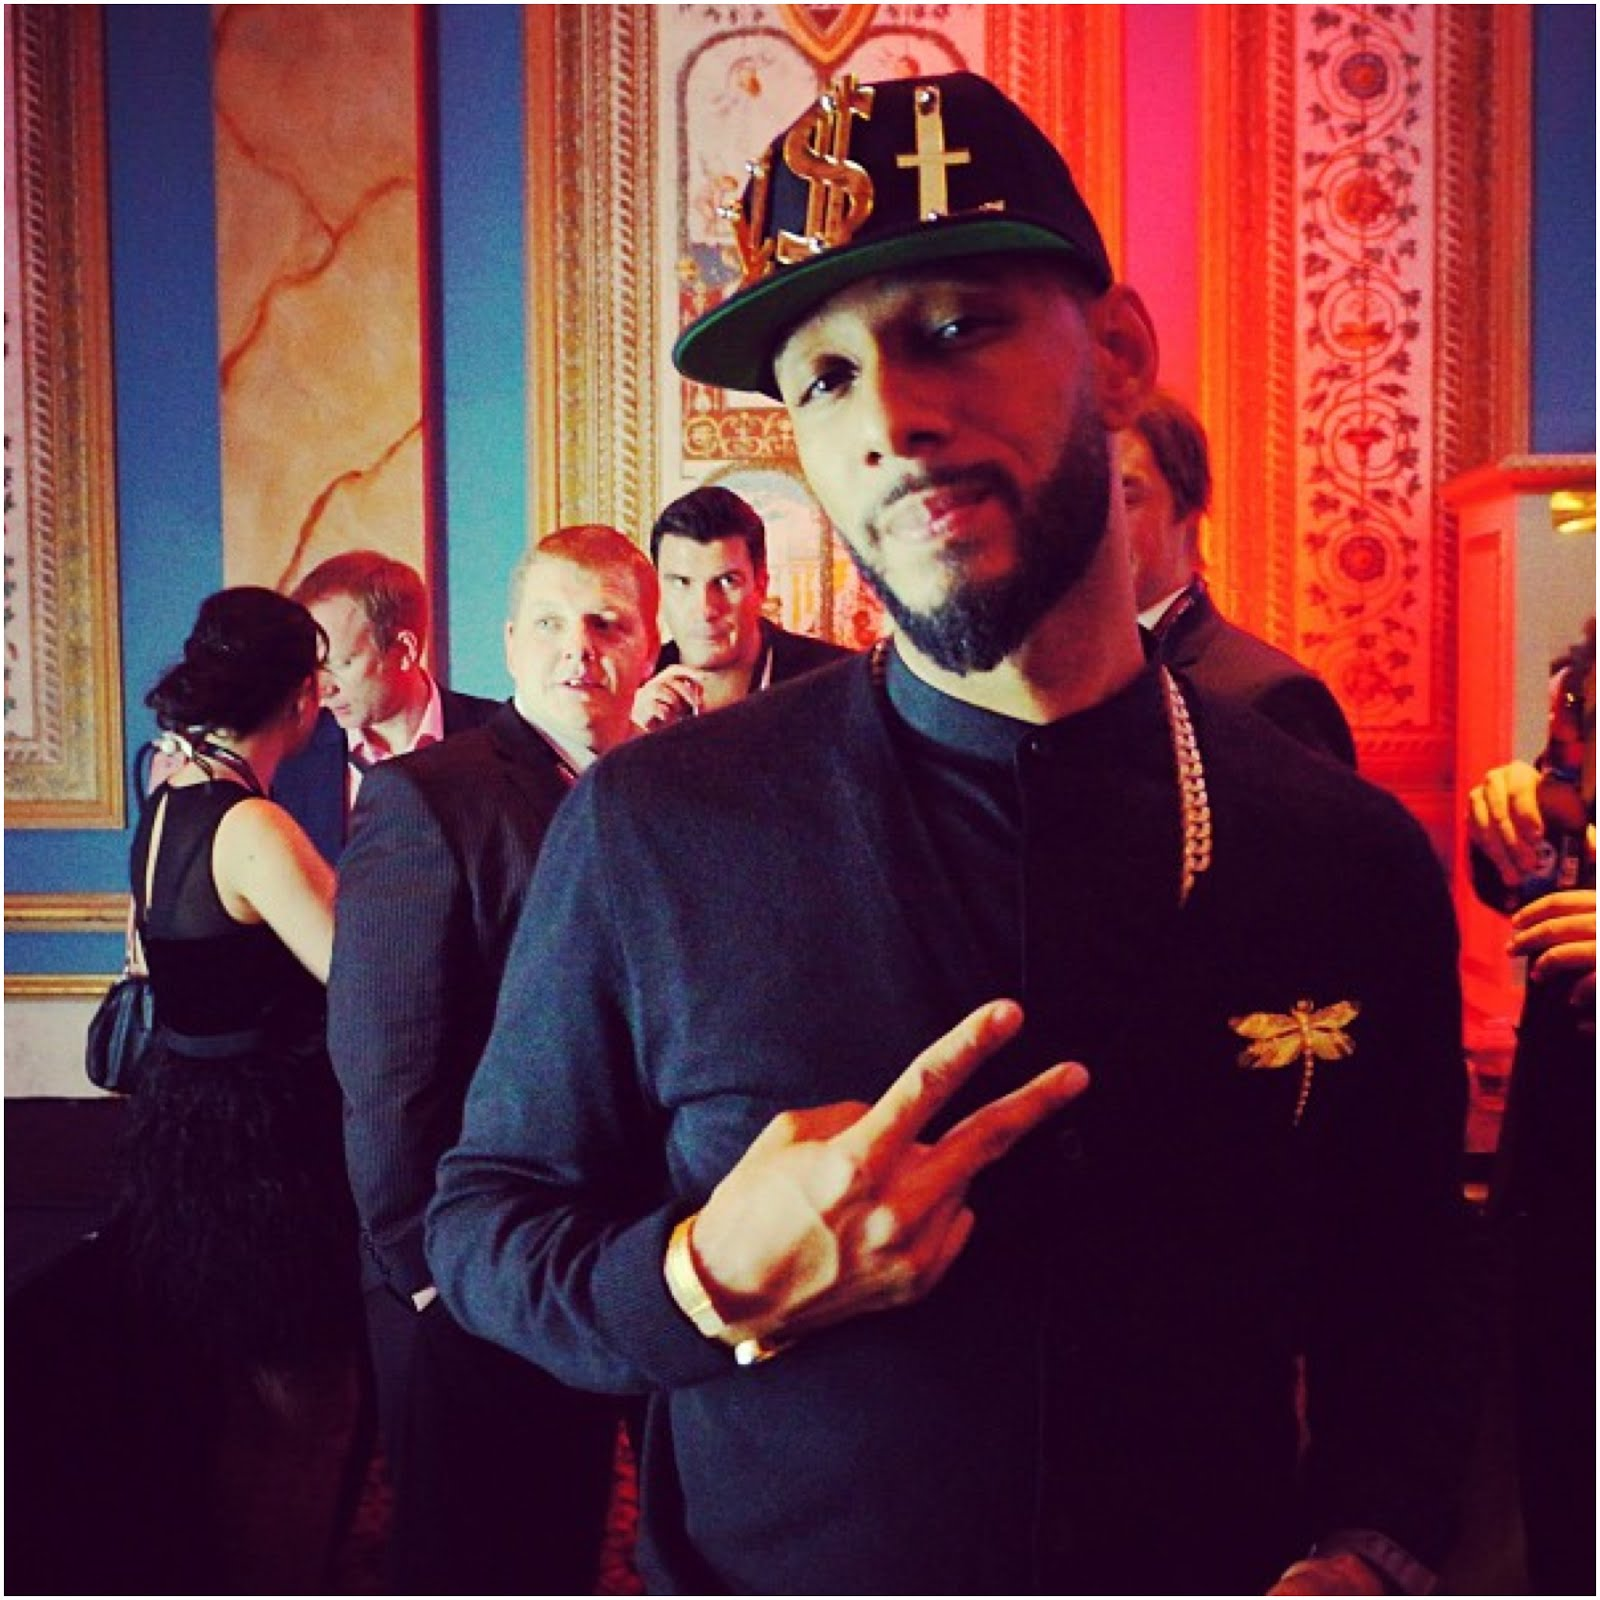 00O00 Menswear Blog Swizz Beatz in Alexander McQueen - CES 2013